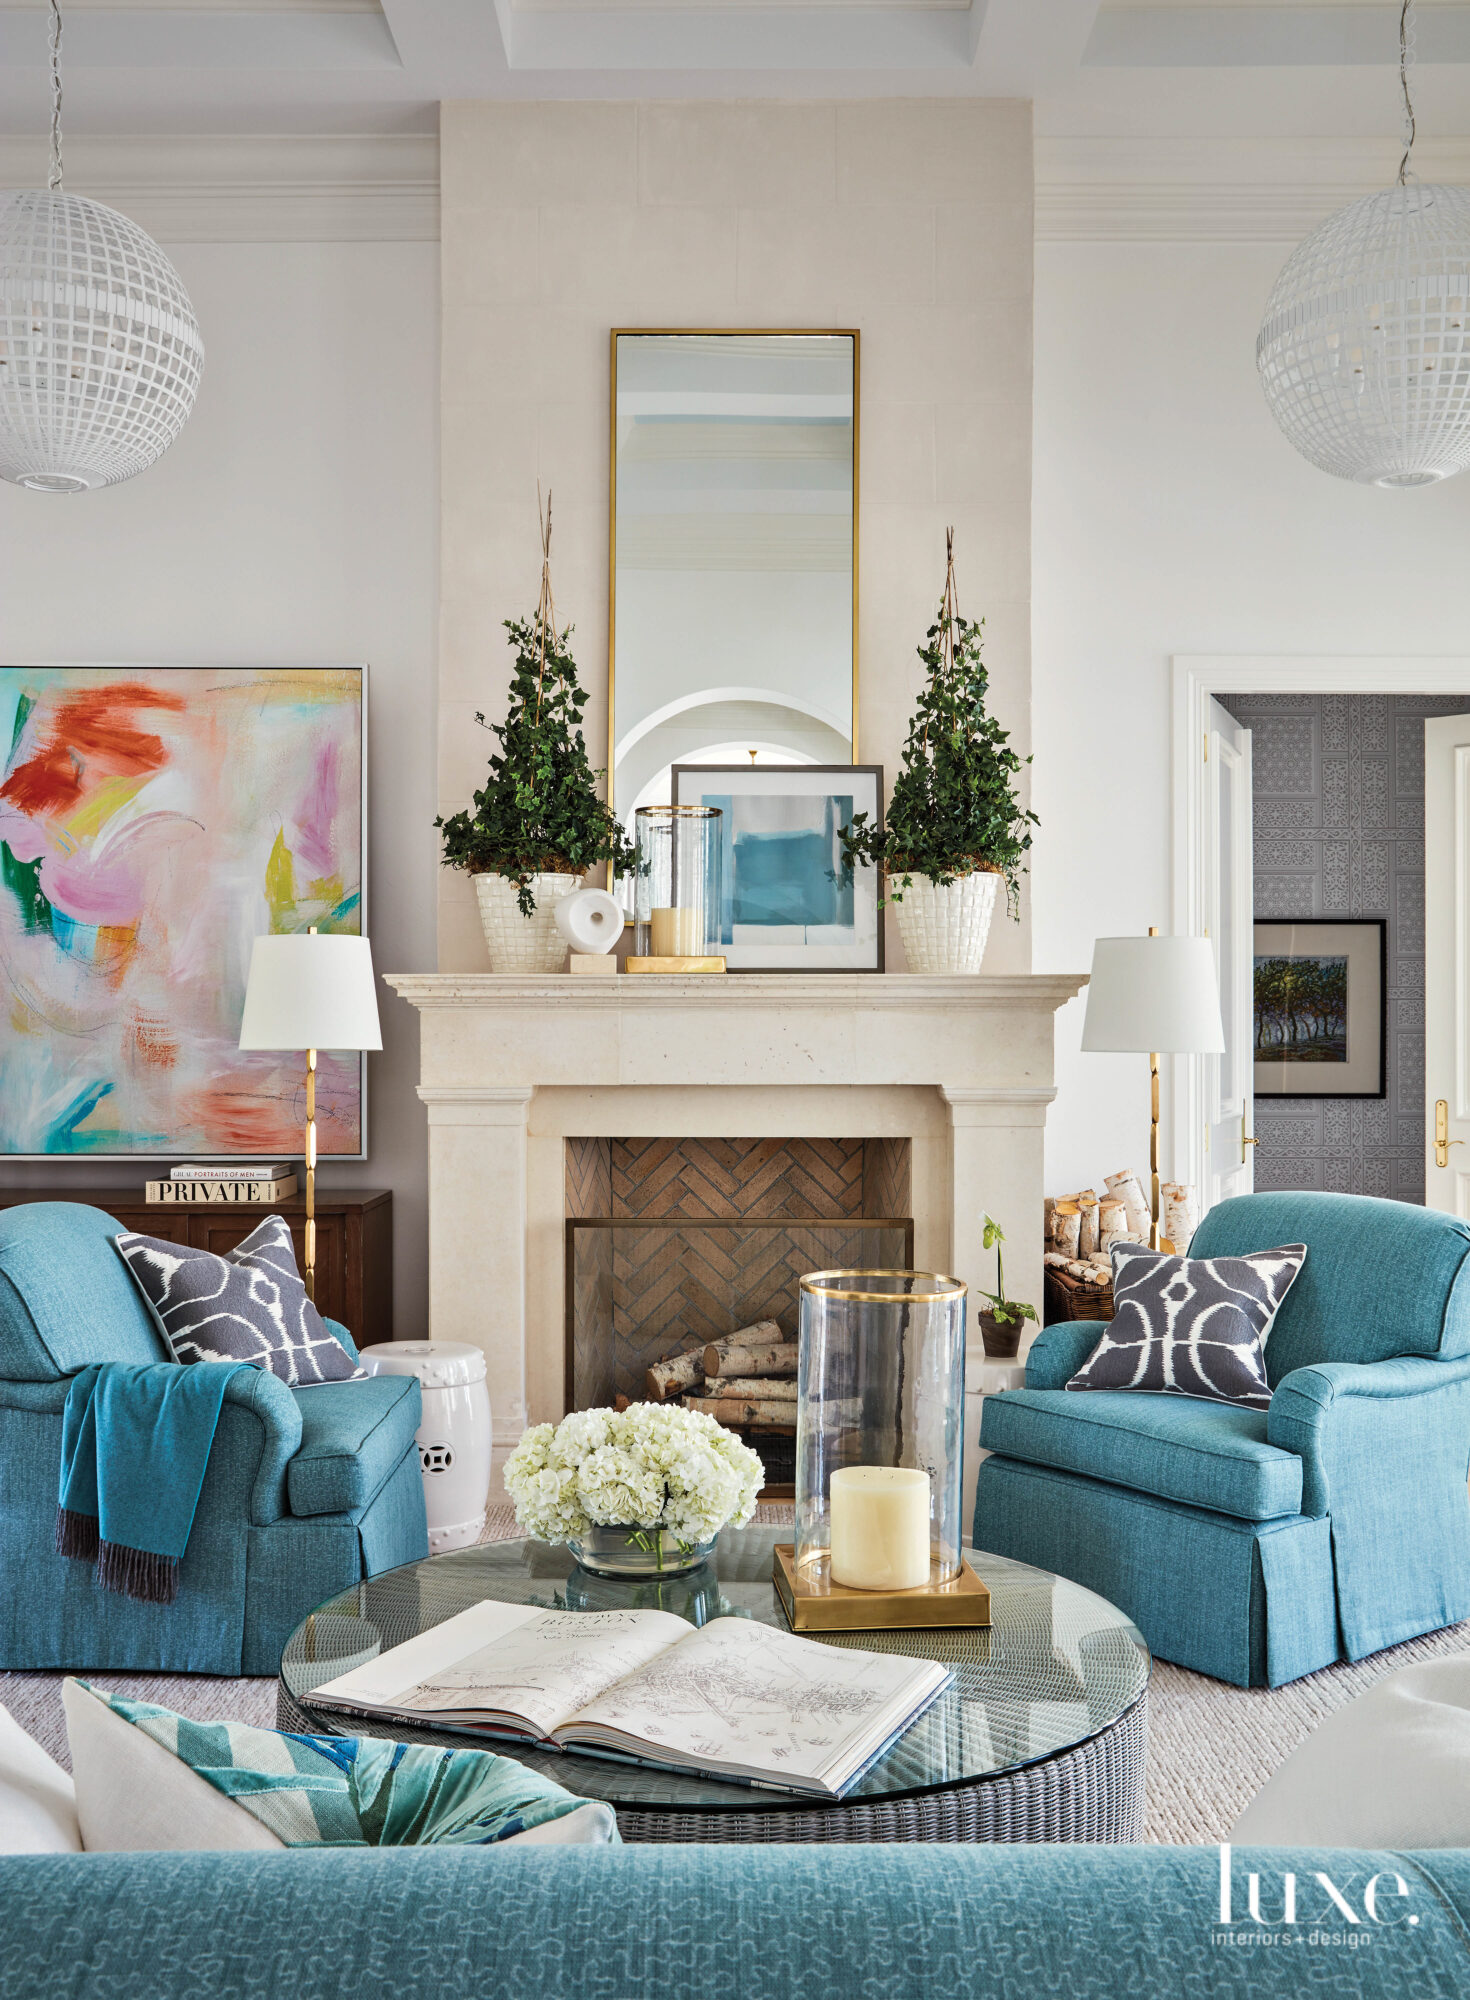 Colorful Interiors Reign Supreme In This Revamped Naples Getaway {Colorful Interiors Reign Supreme In This Revamped Naples Getaway} – English